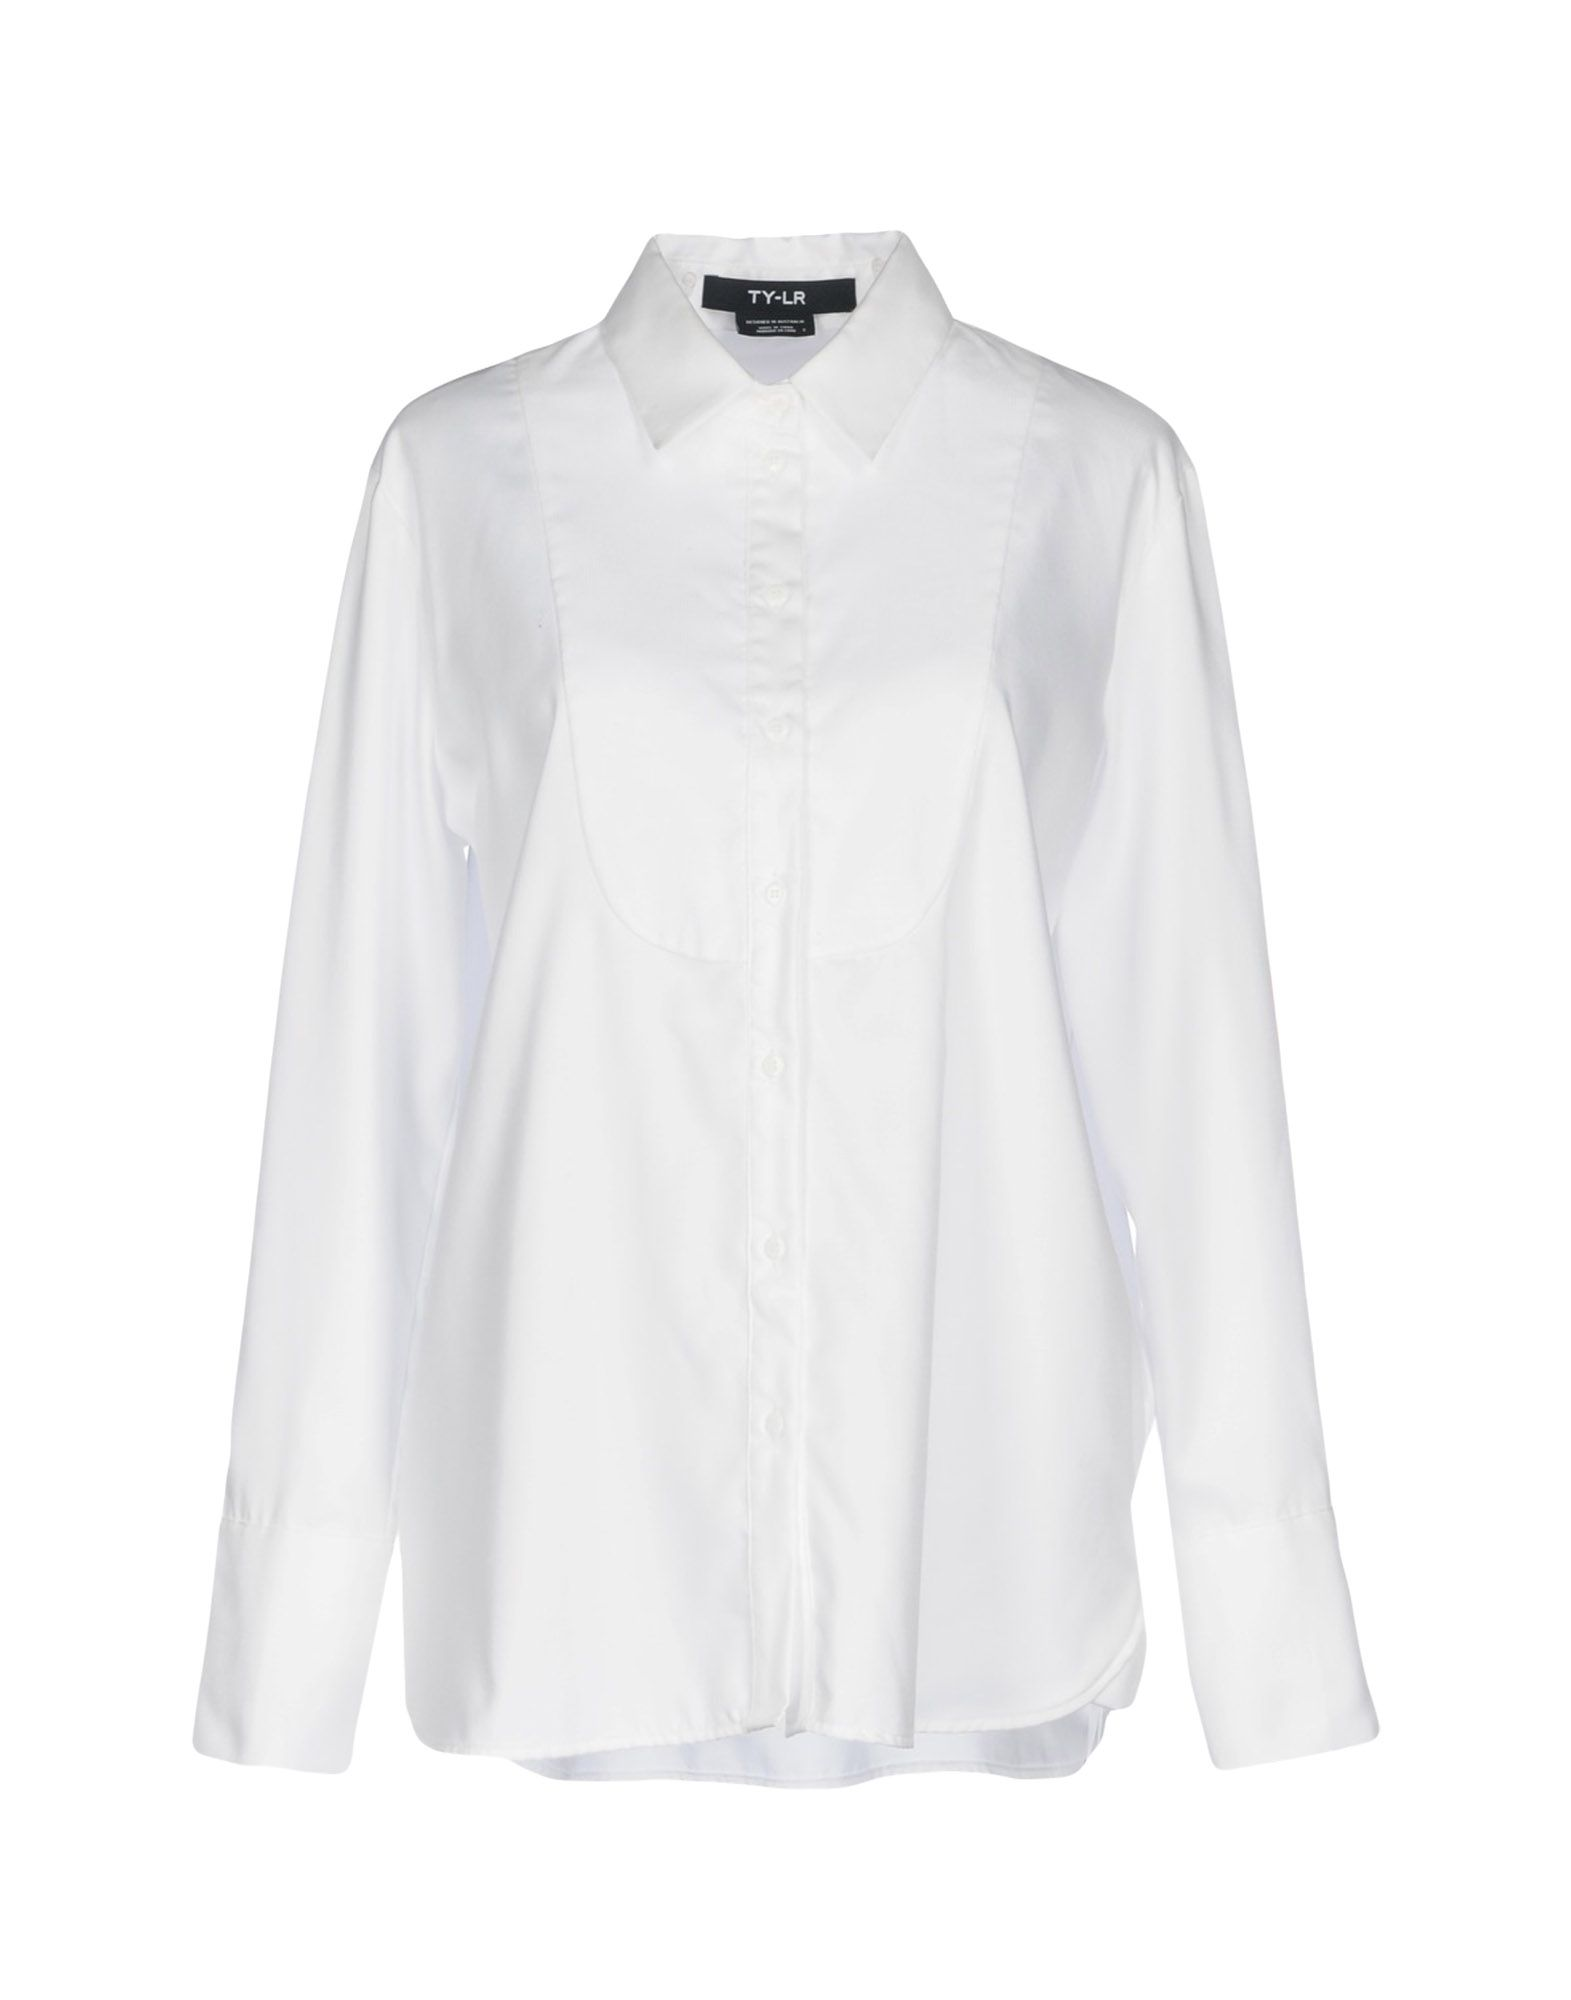 TY-LR Solid Color Shirts & Blouses in White